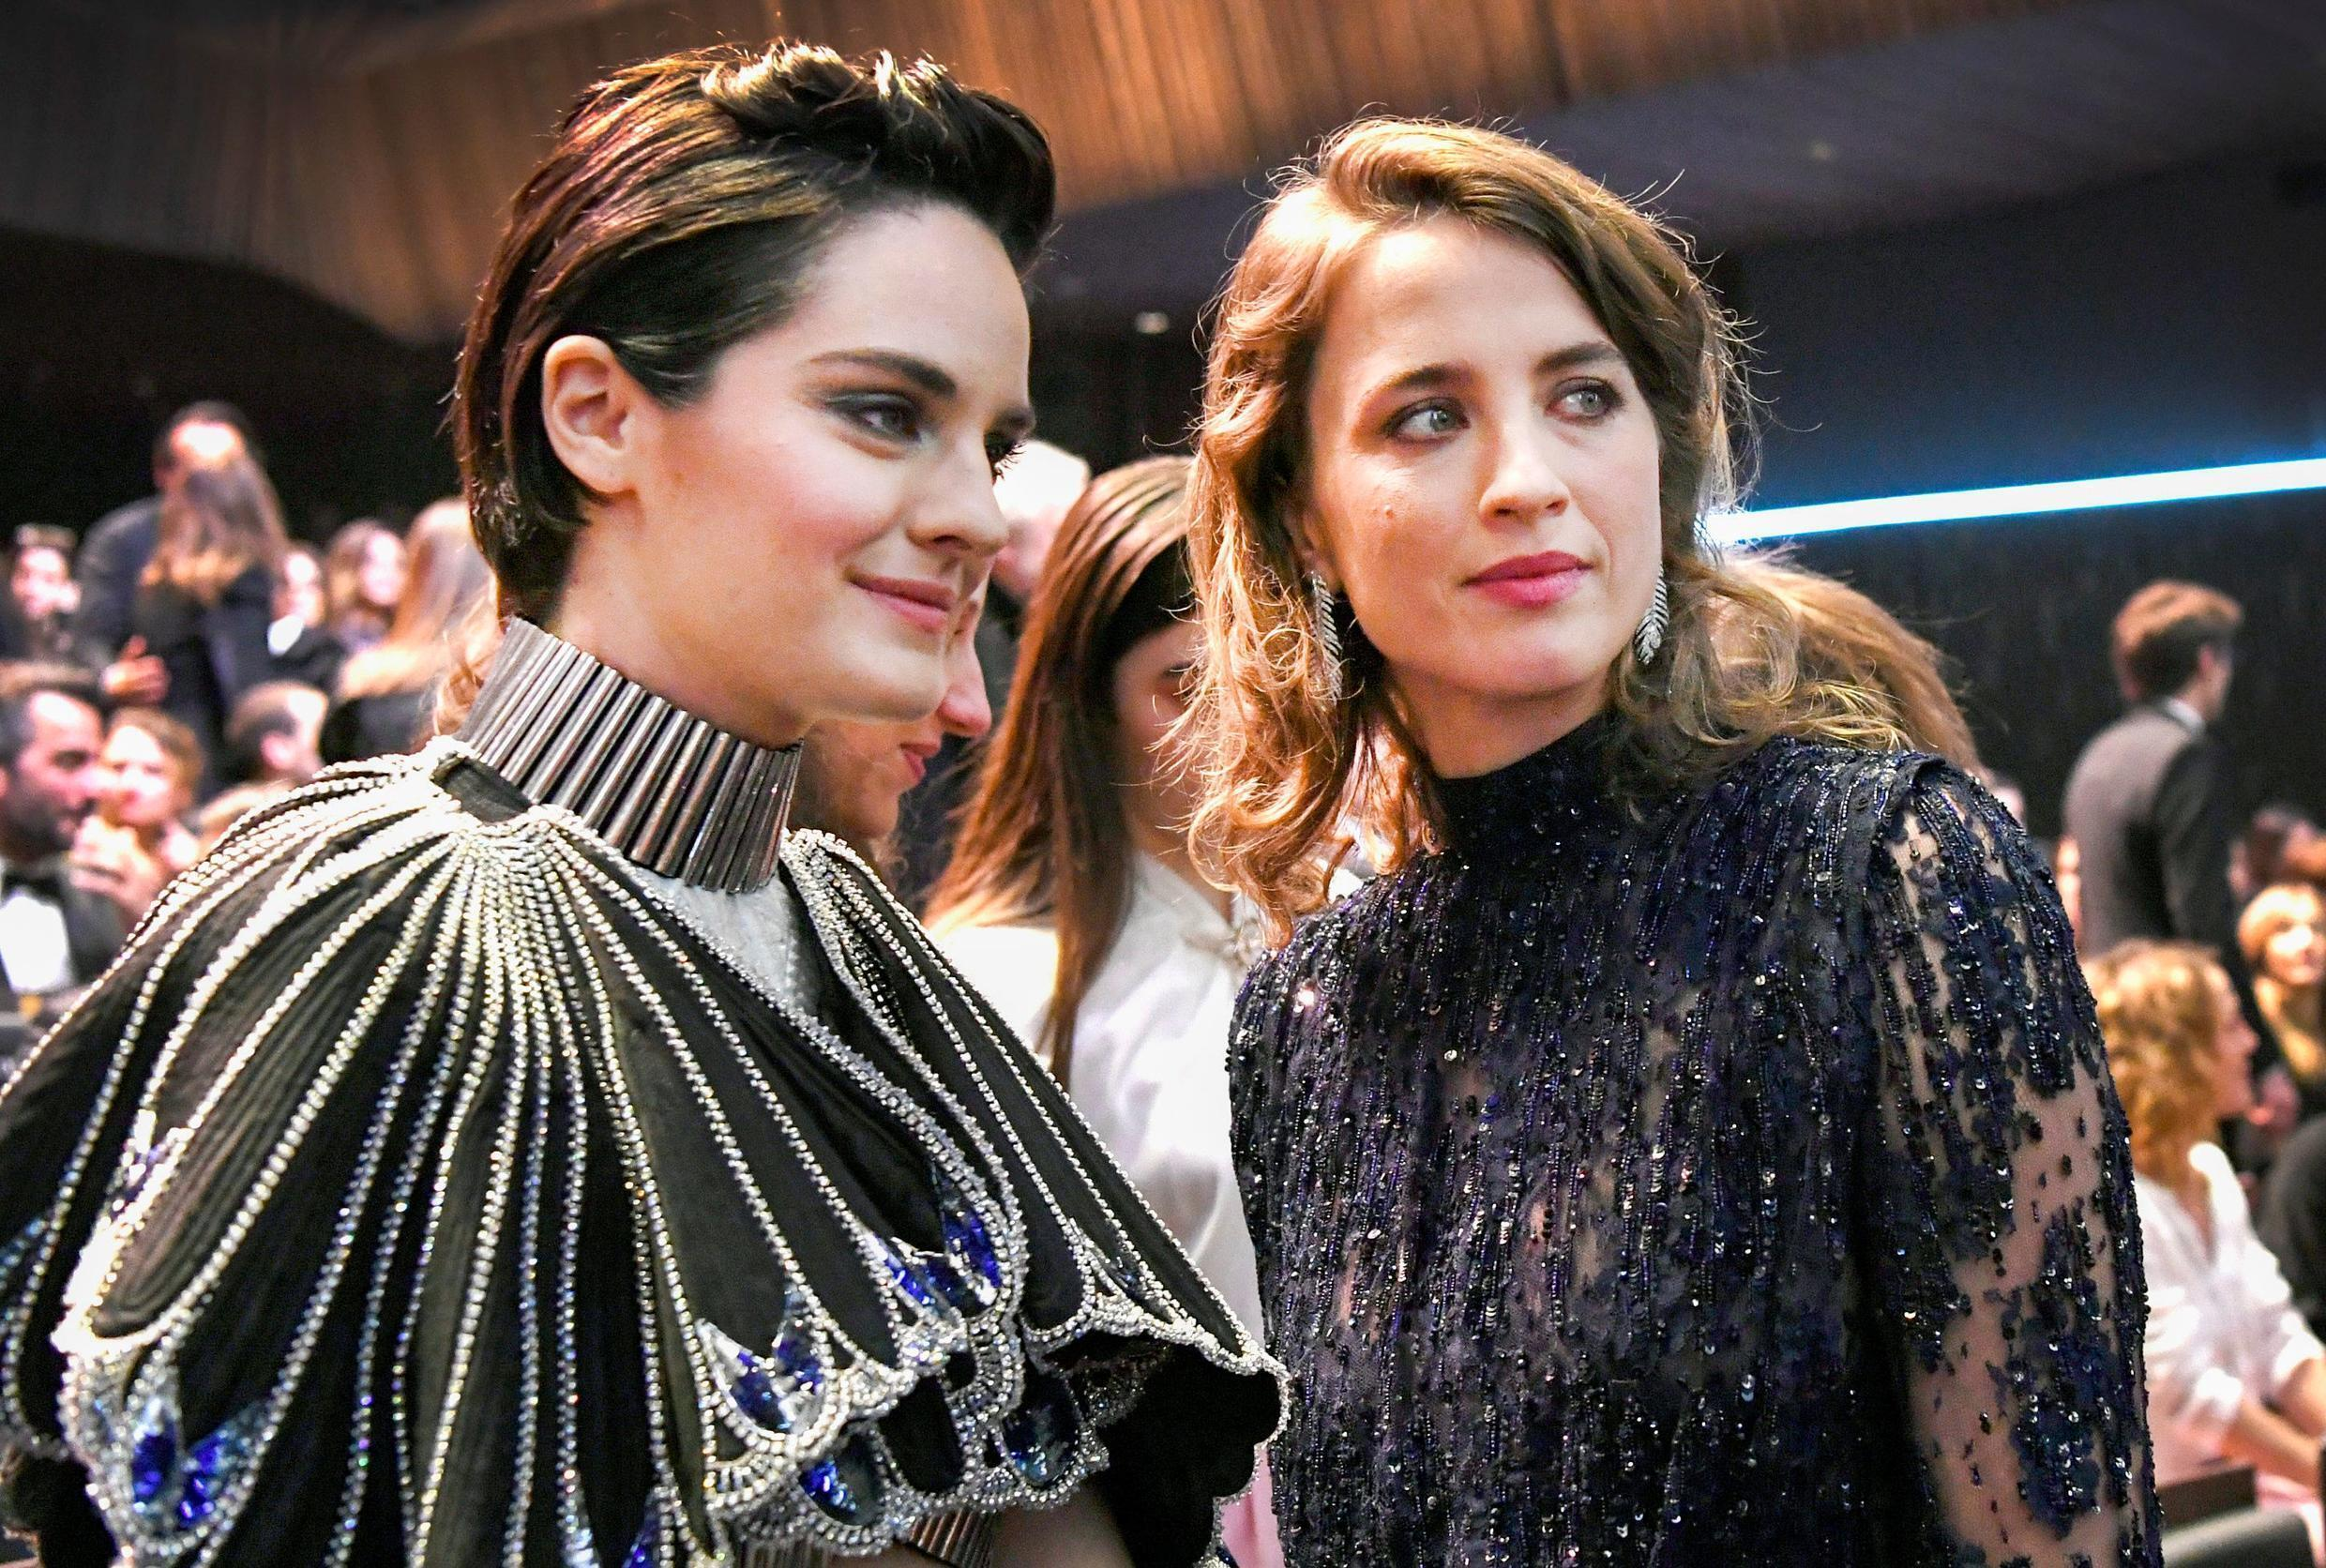 Actors Noemie Merlant (L) and Adele Haenel (R) at the Cesar Awards ceremony in Paris. Haenel has been a figurehead for denouncing sexual harassment in the French film industry.